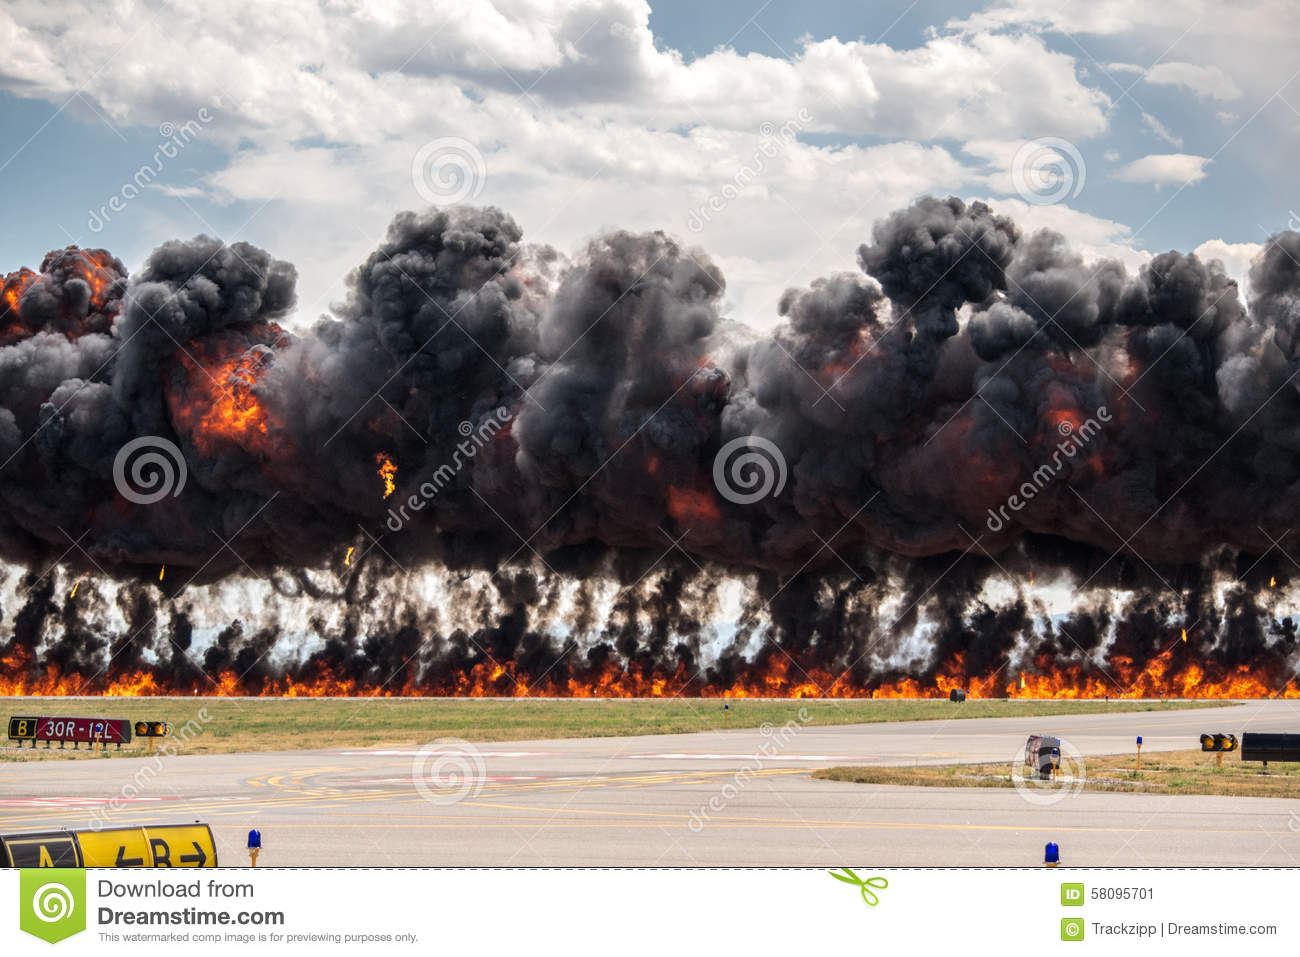 Carpet Bomb stock image  Image of safety  lines  grey   58095701 Download Carpet Bomb stock image  Image of safety  lines  grey   58095701